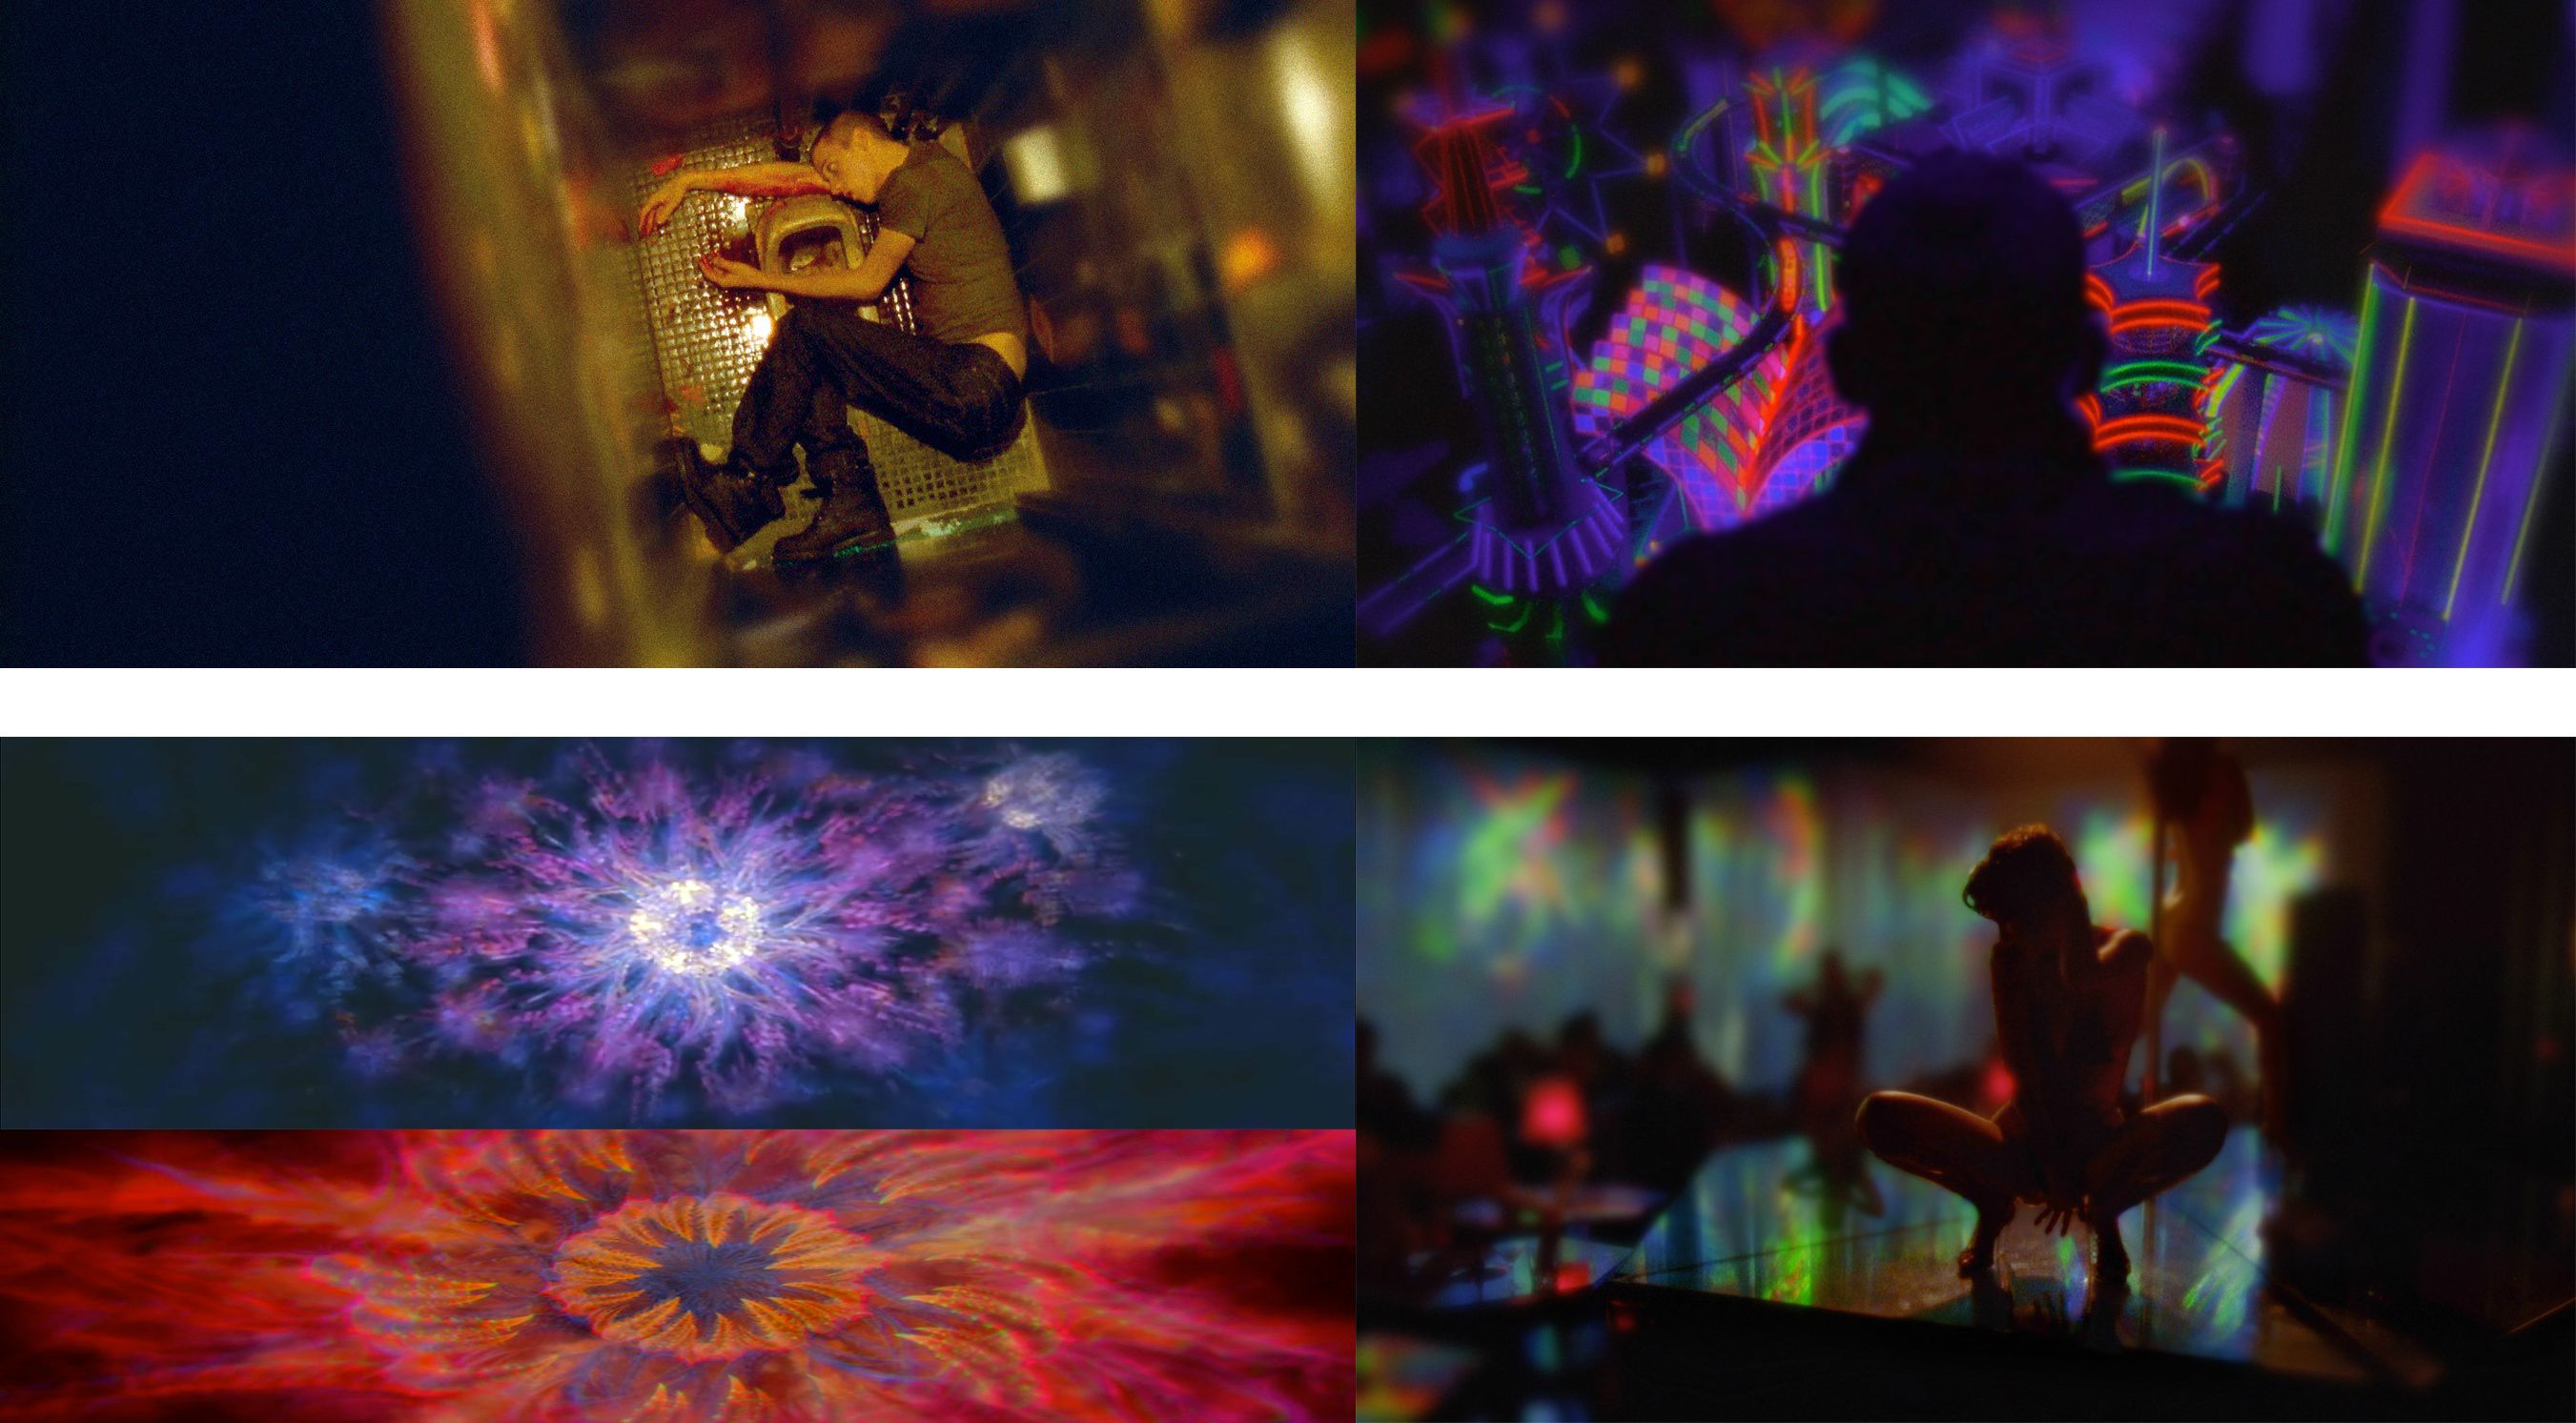 world's wildest cinema - Enter The Void - http://johnrieber.com/2014/11/01/audacious-mind-blowing-cinema-enter-the-void-vanishing-waves-and-holy-motors/